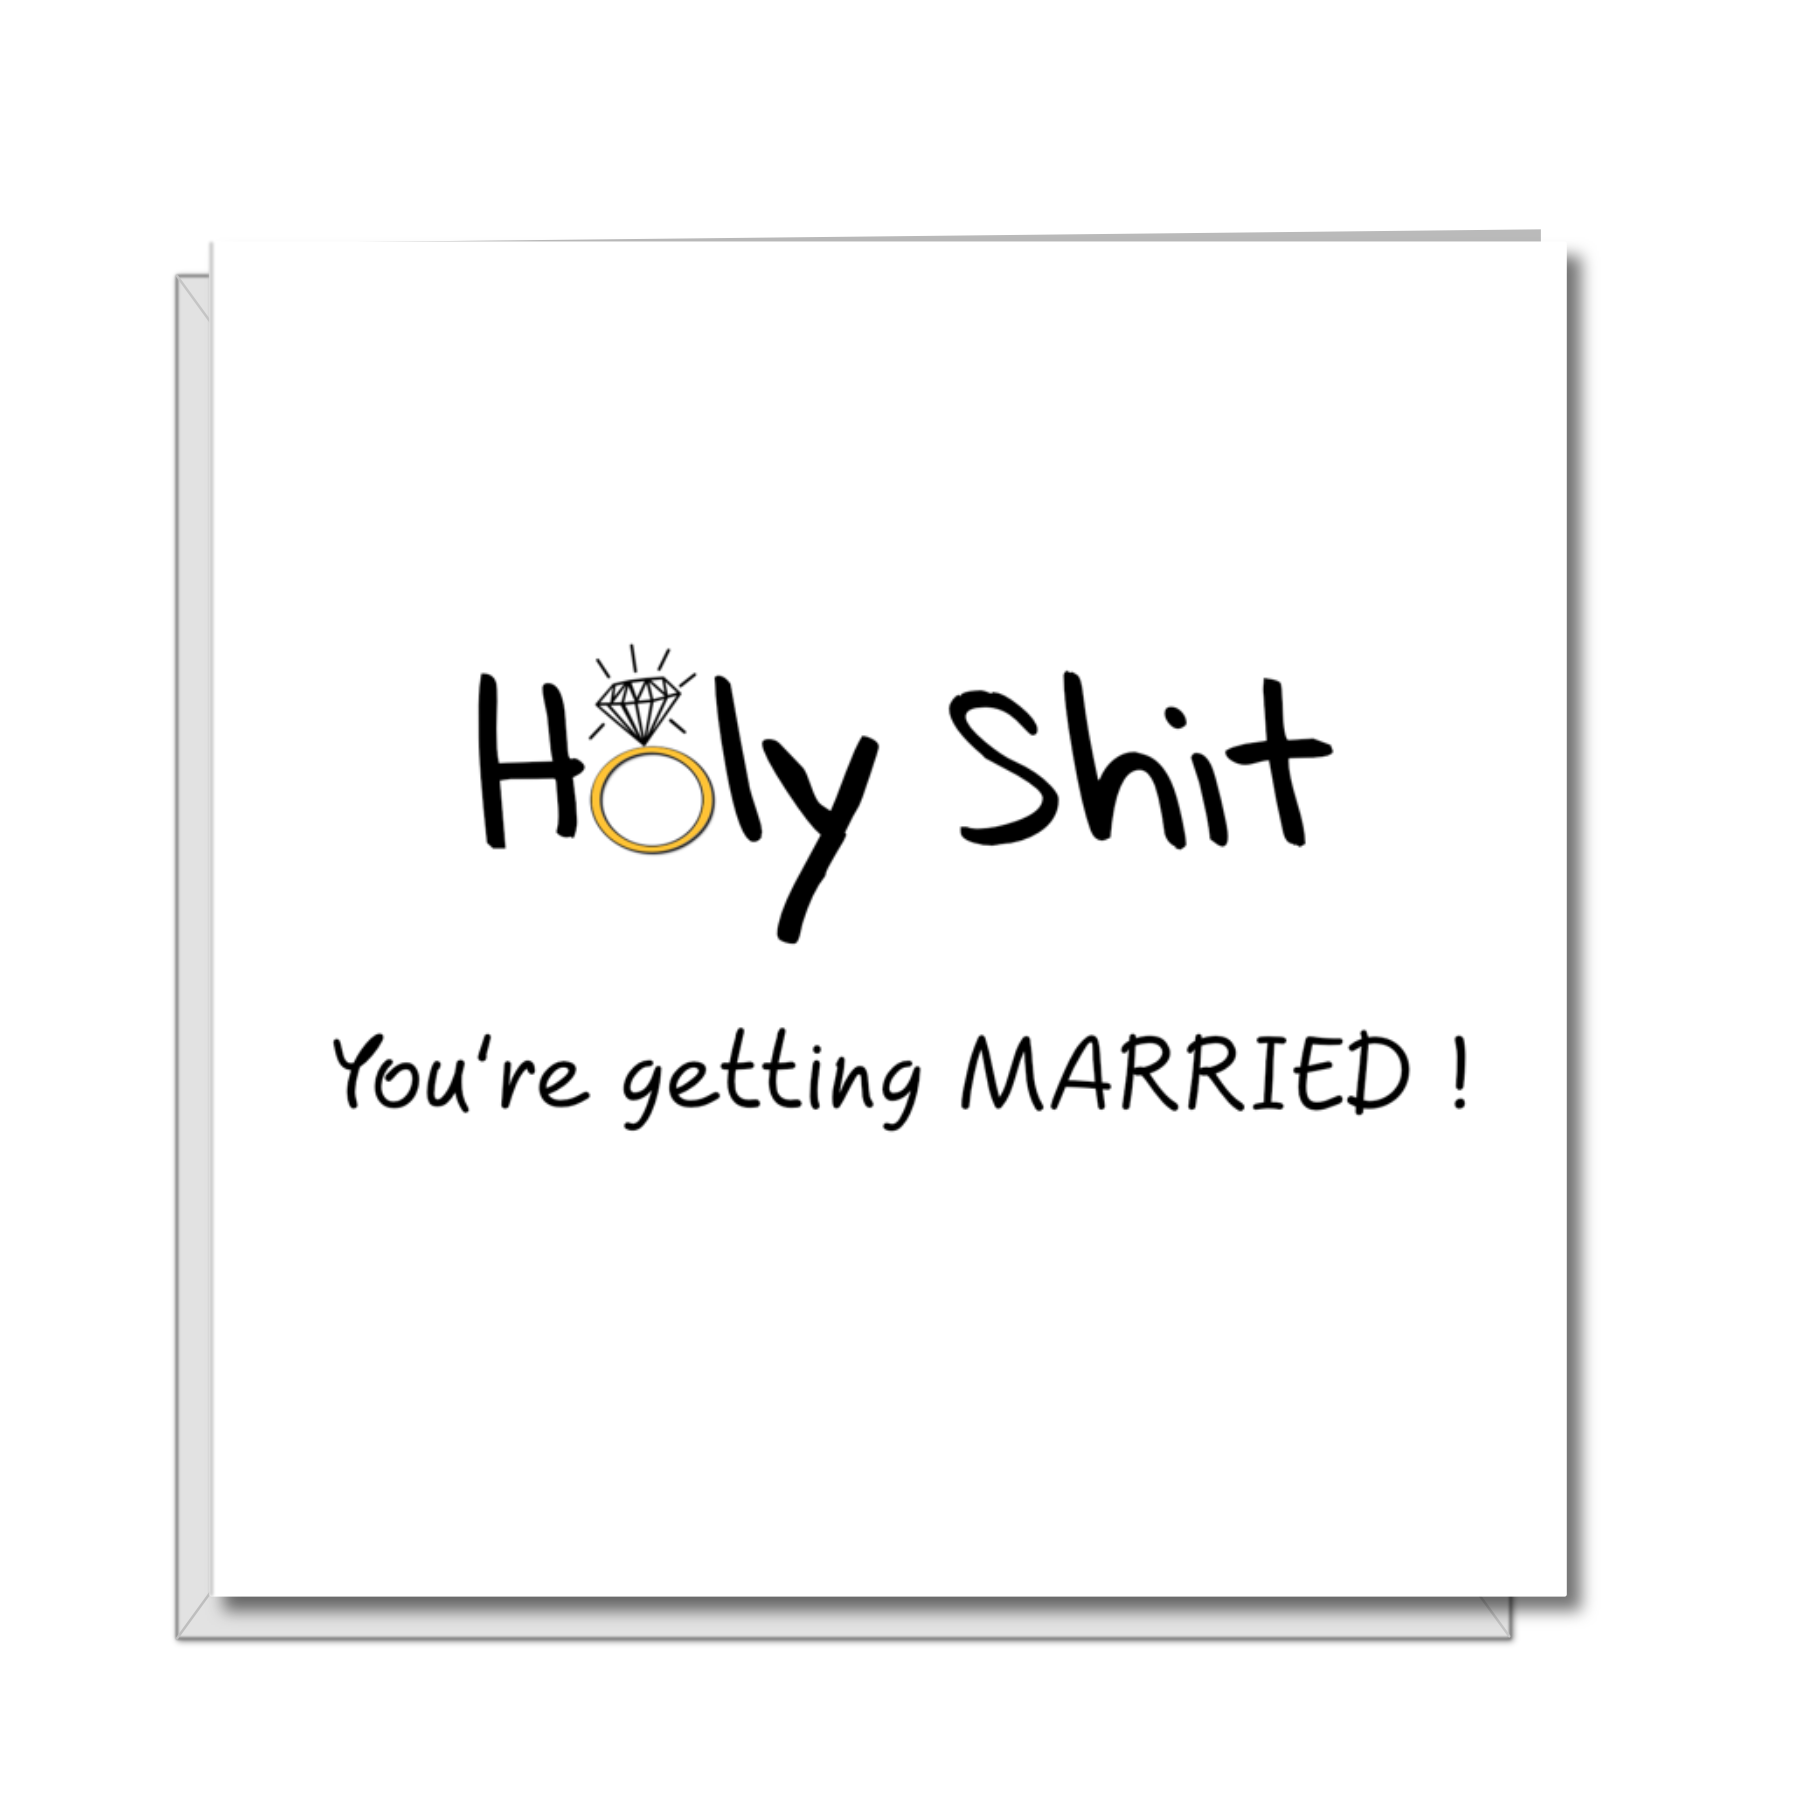 Congratulations GETTING MARRIED card -  Holy Shit Engagement for bride or groom - Funny Humorous  crude